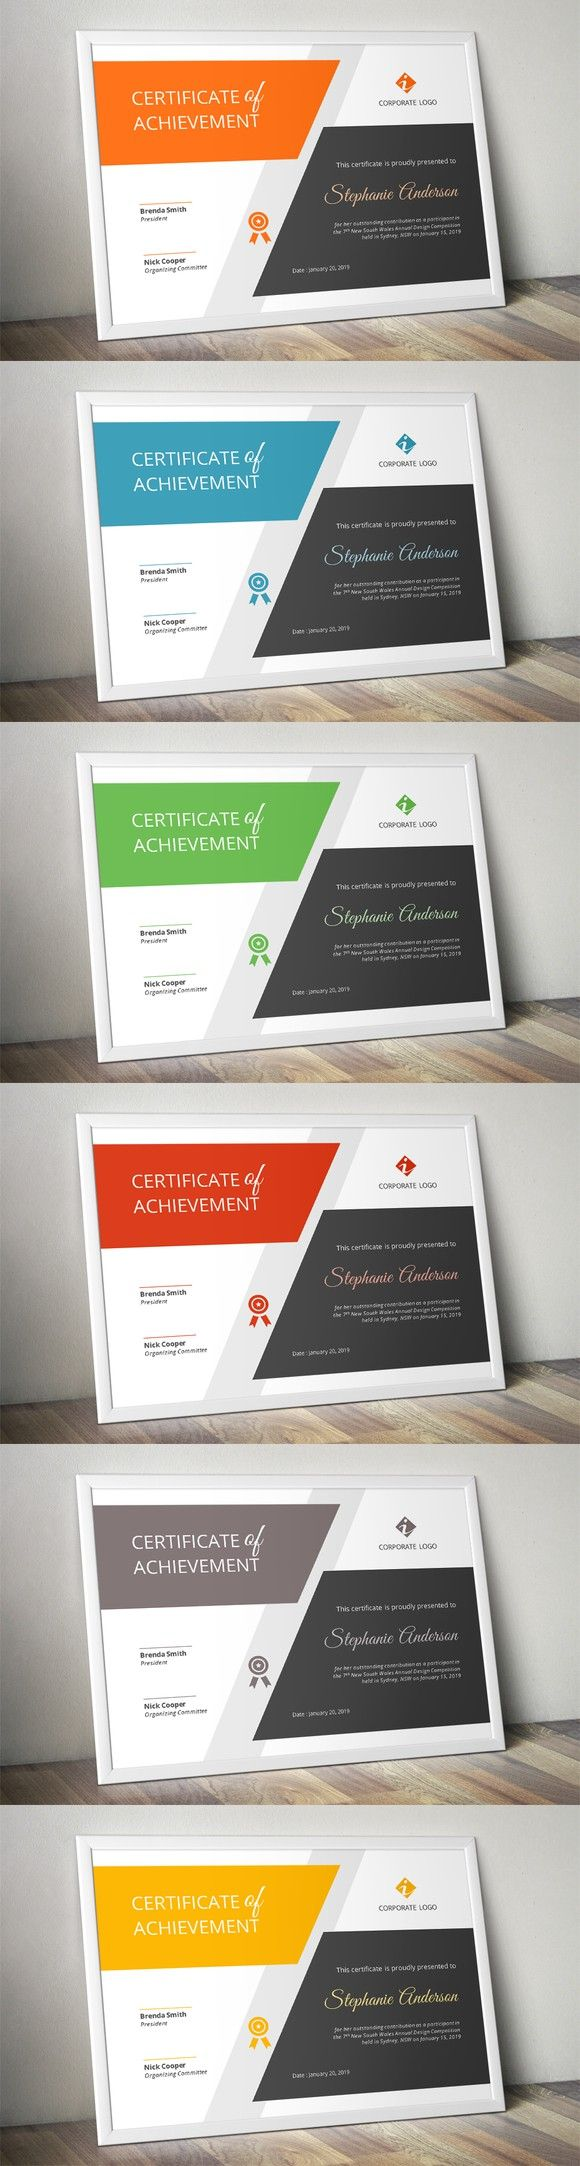 57 best certificates images on Pinterest | Certificate templates ...